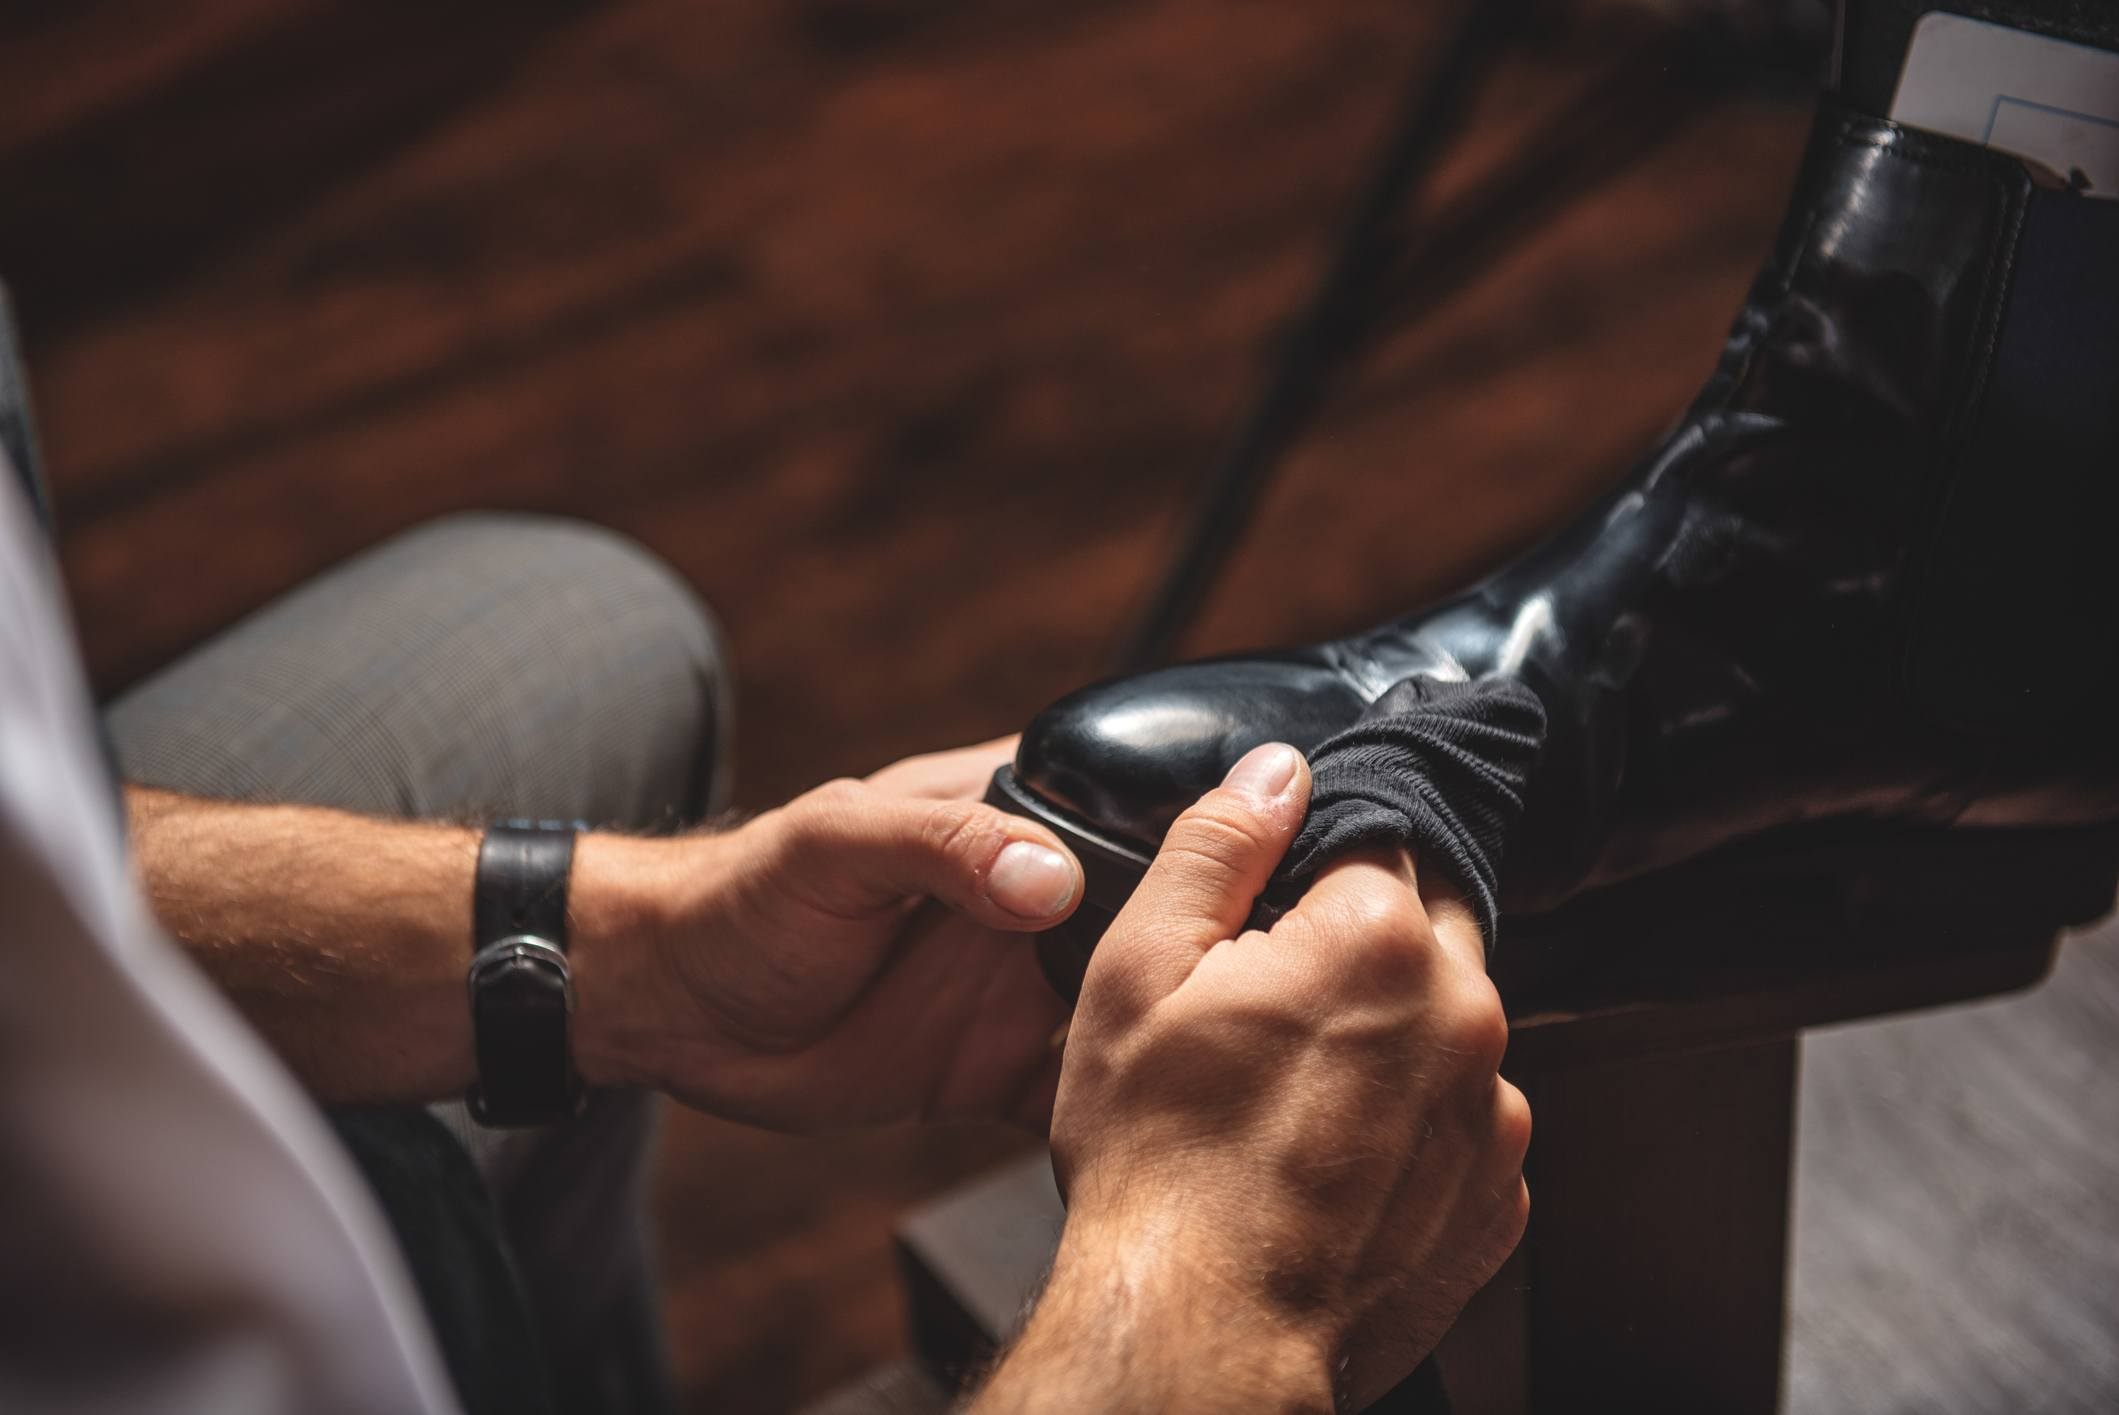 Man getting shoe shine